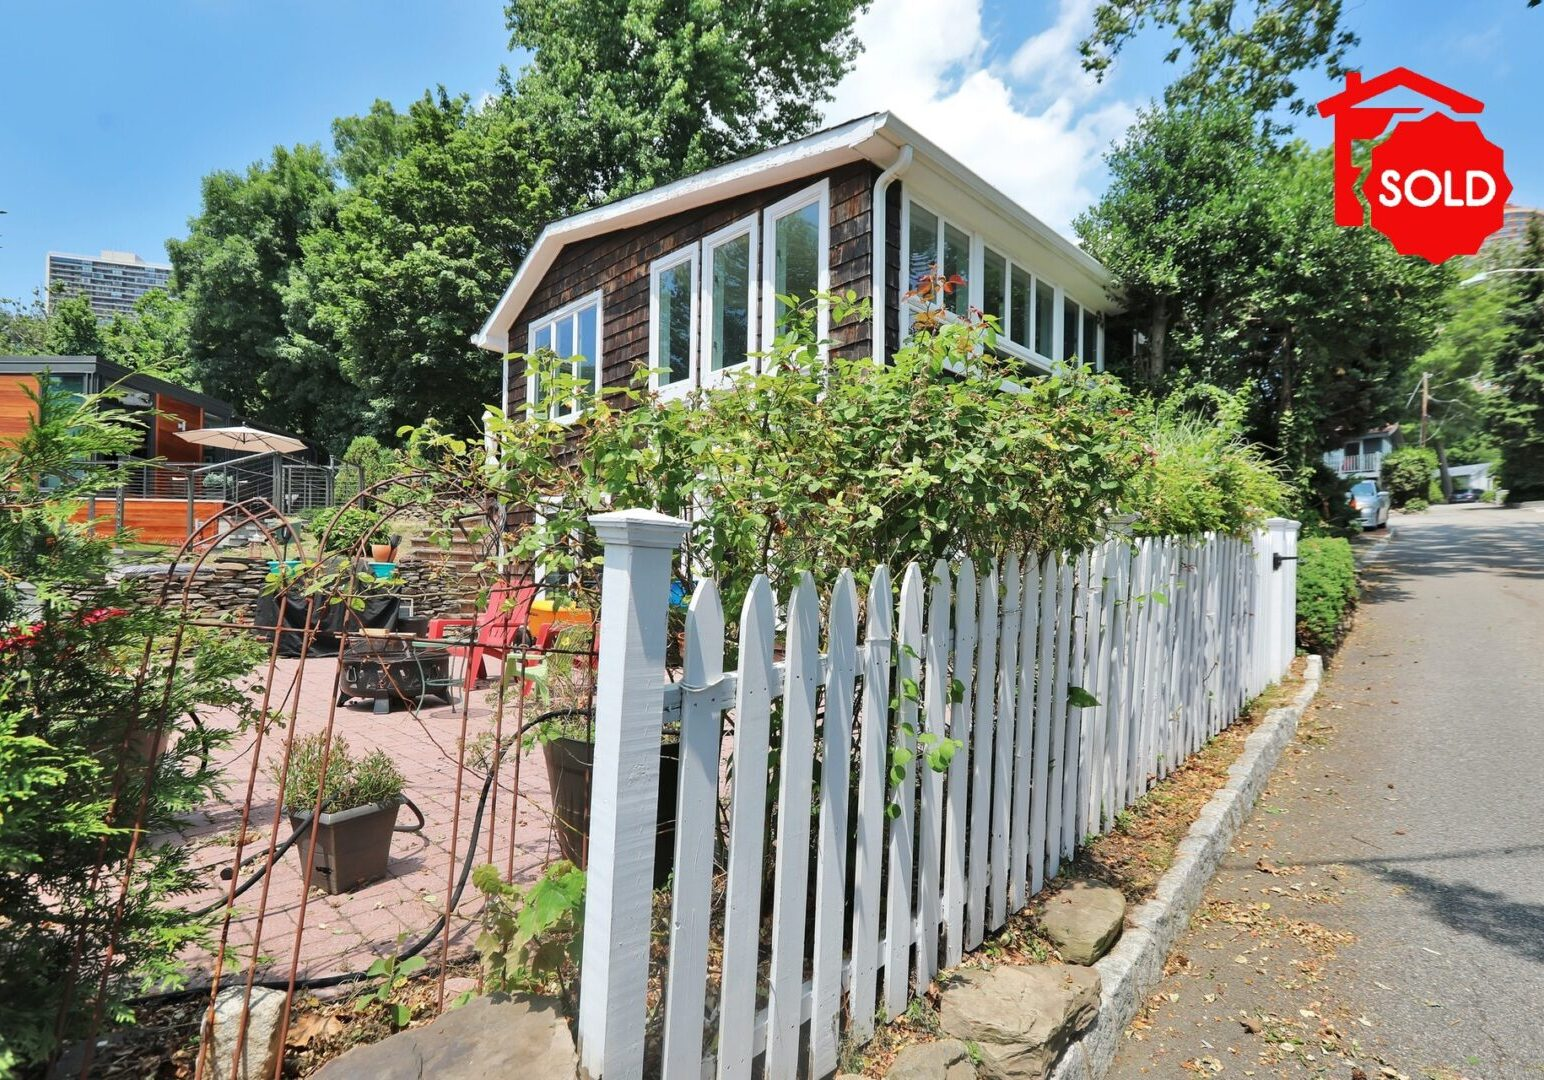 SOLD - 16 Colony Road Edgewater, NJ 07020 <br><br>$849,000